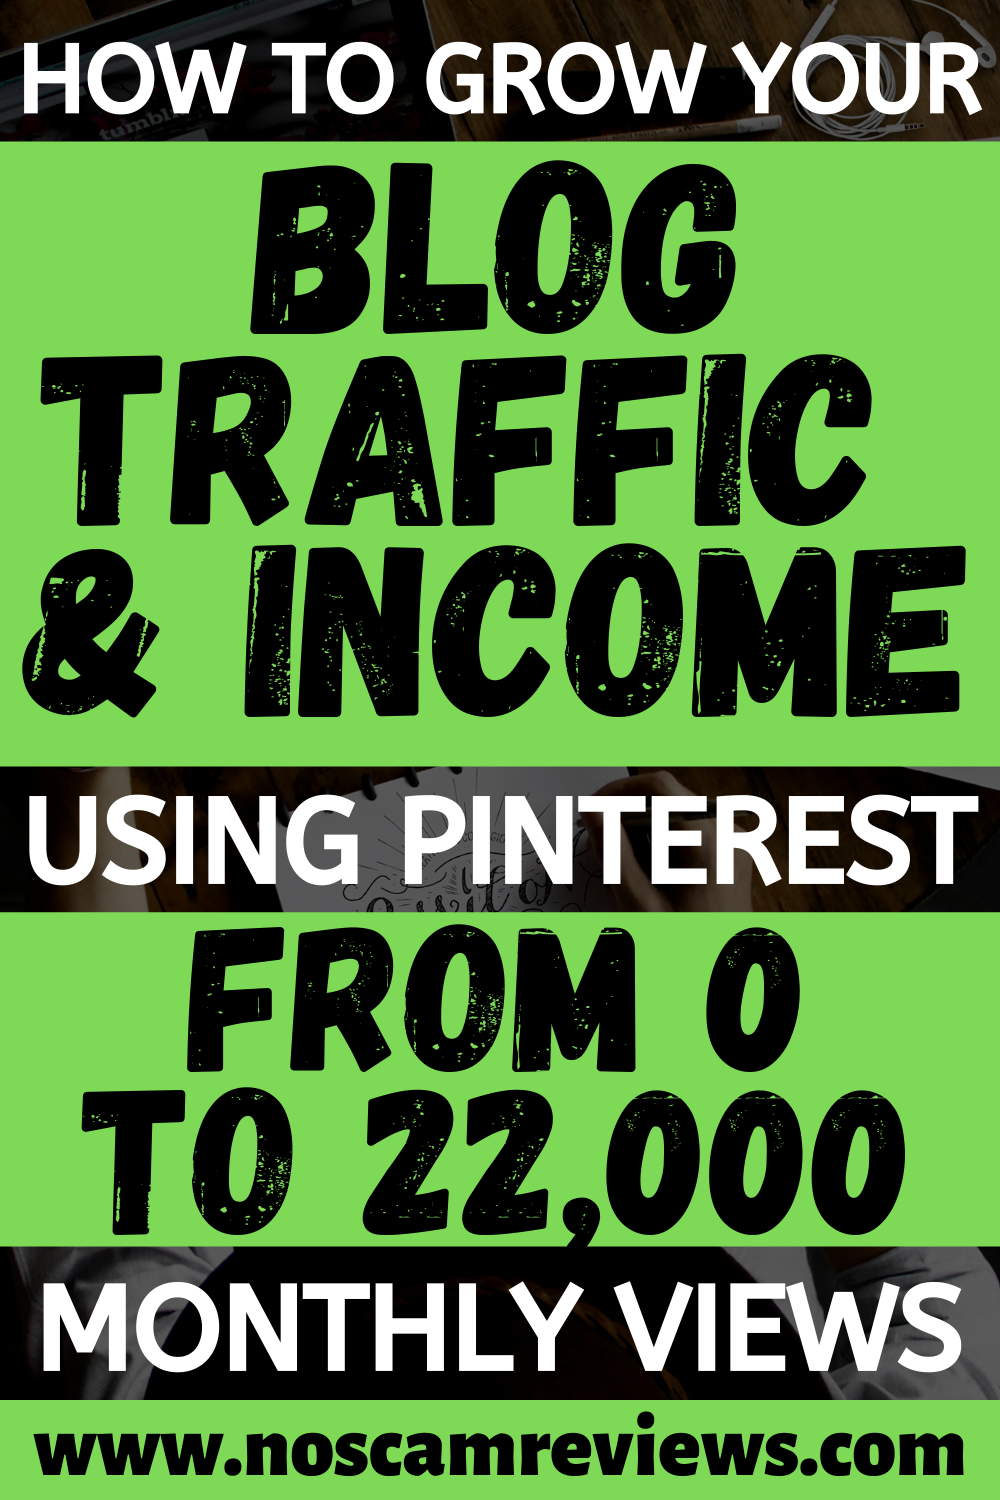 Pinterest Traffic Avalanche Review From 0 To 22,000